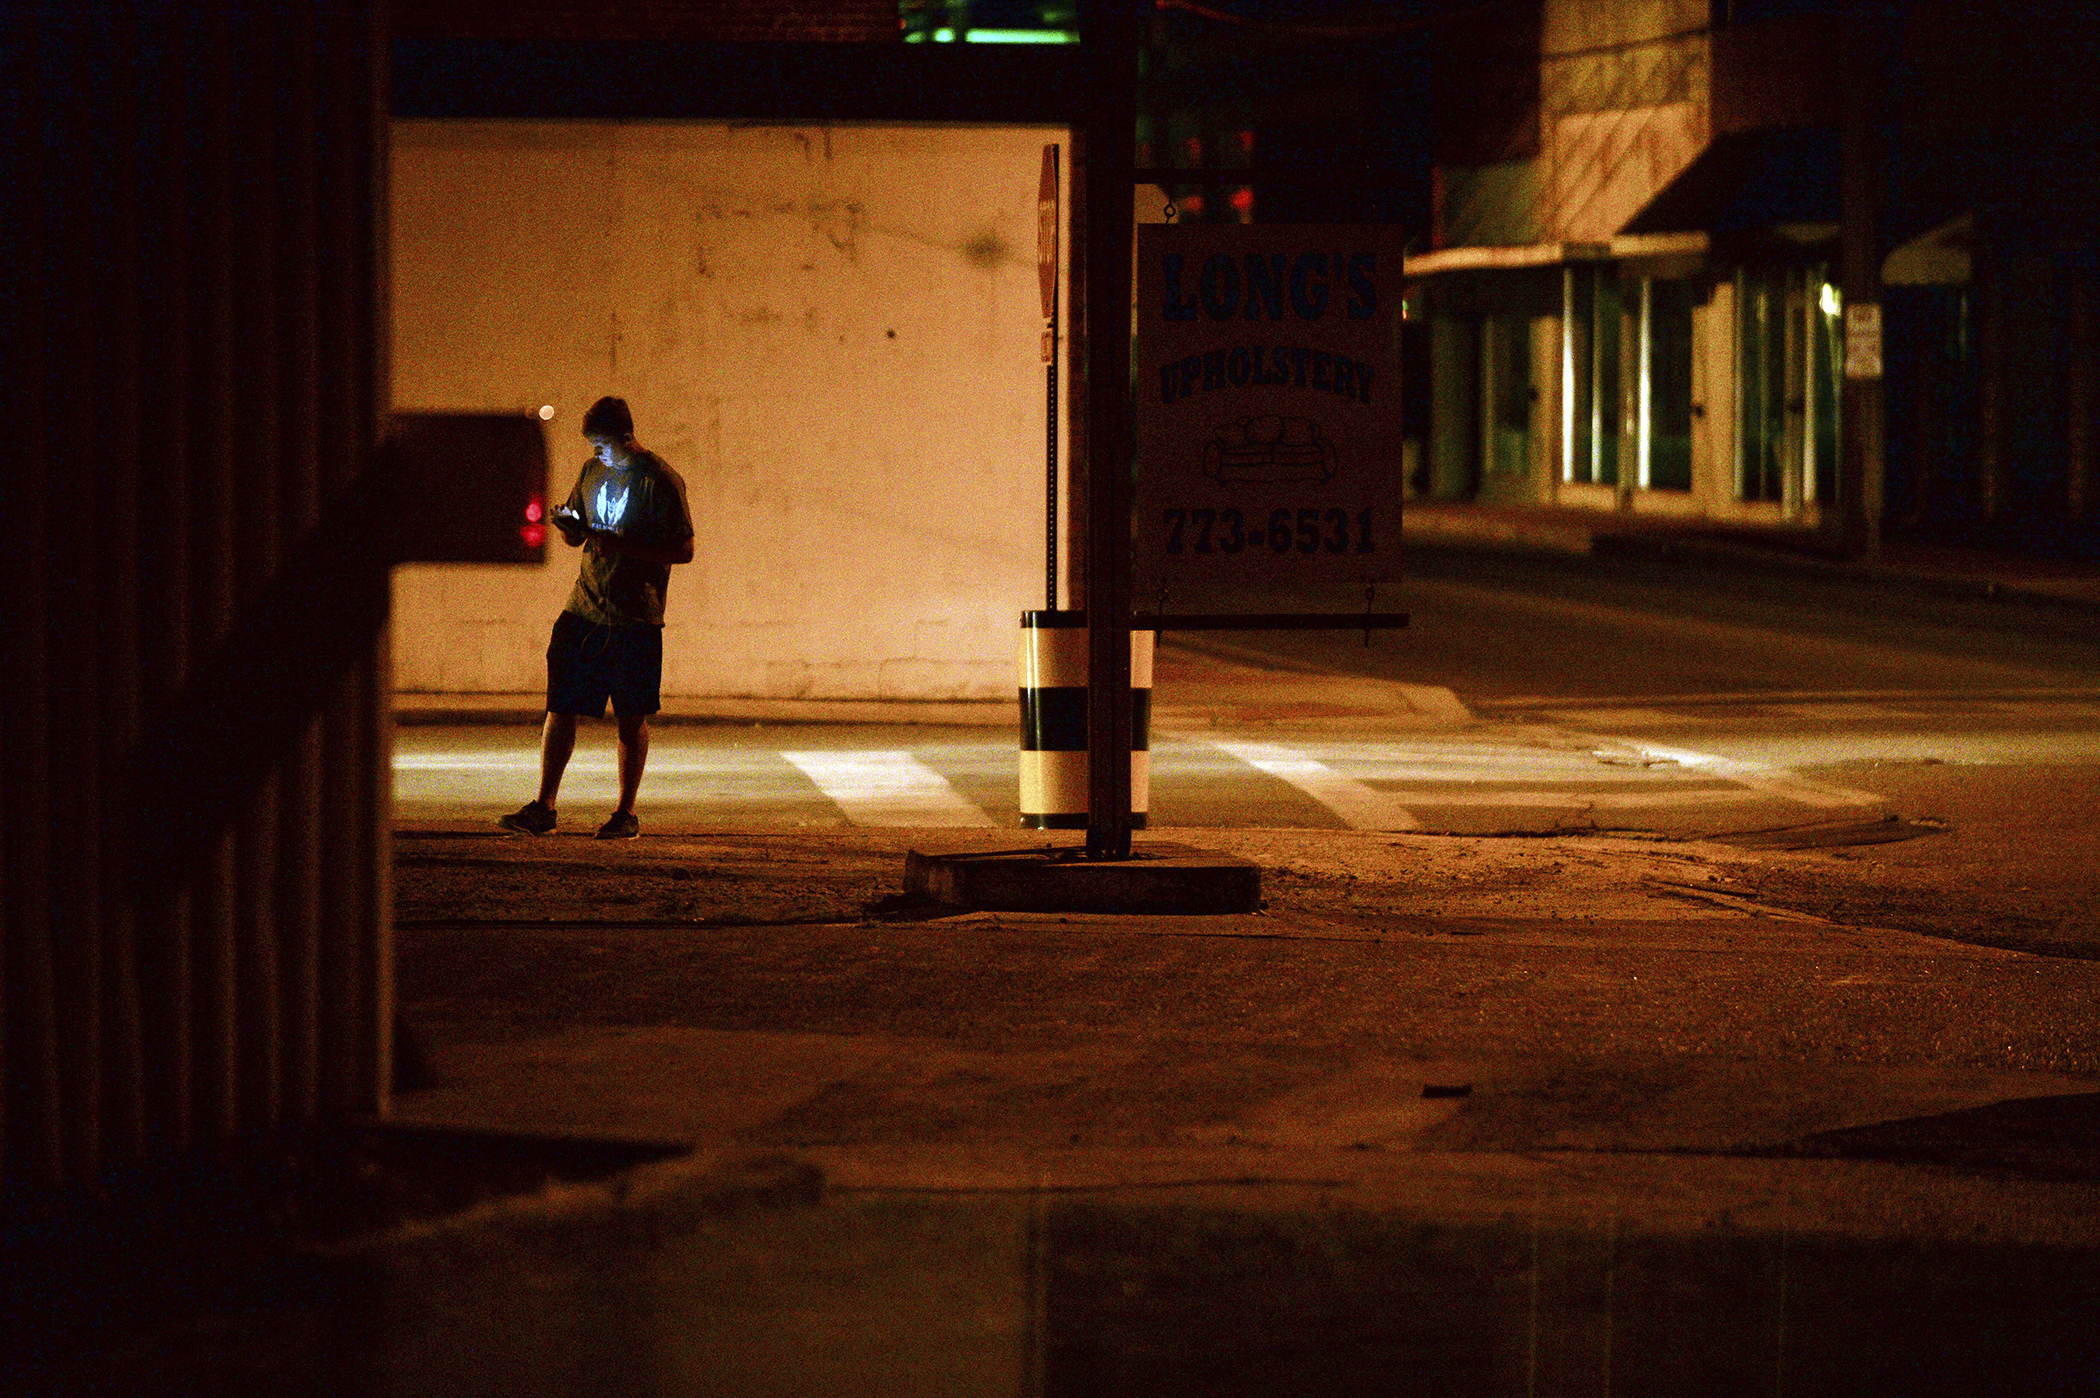 A teenagers plays  Pokemon Go  in downtown Hartselle, Alabama, at night on  July 13, 2016.